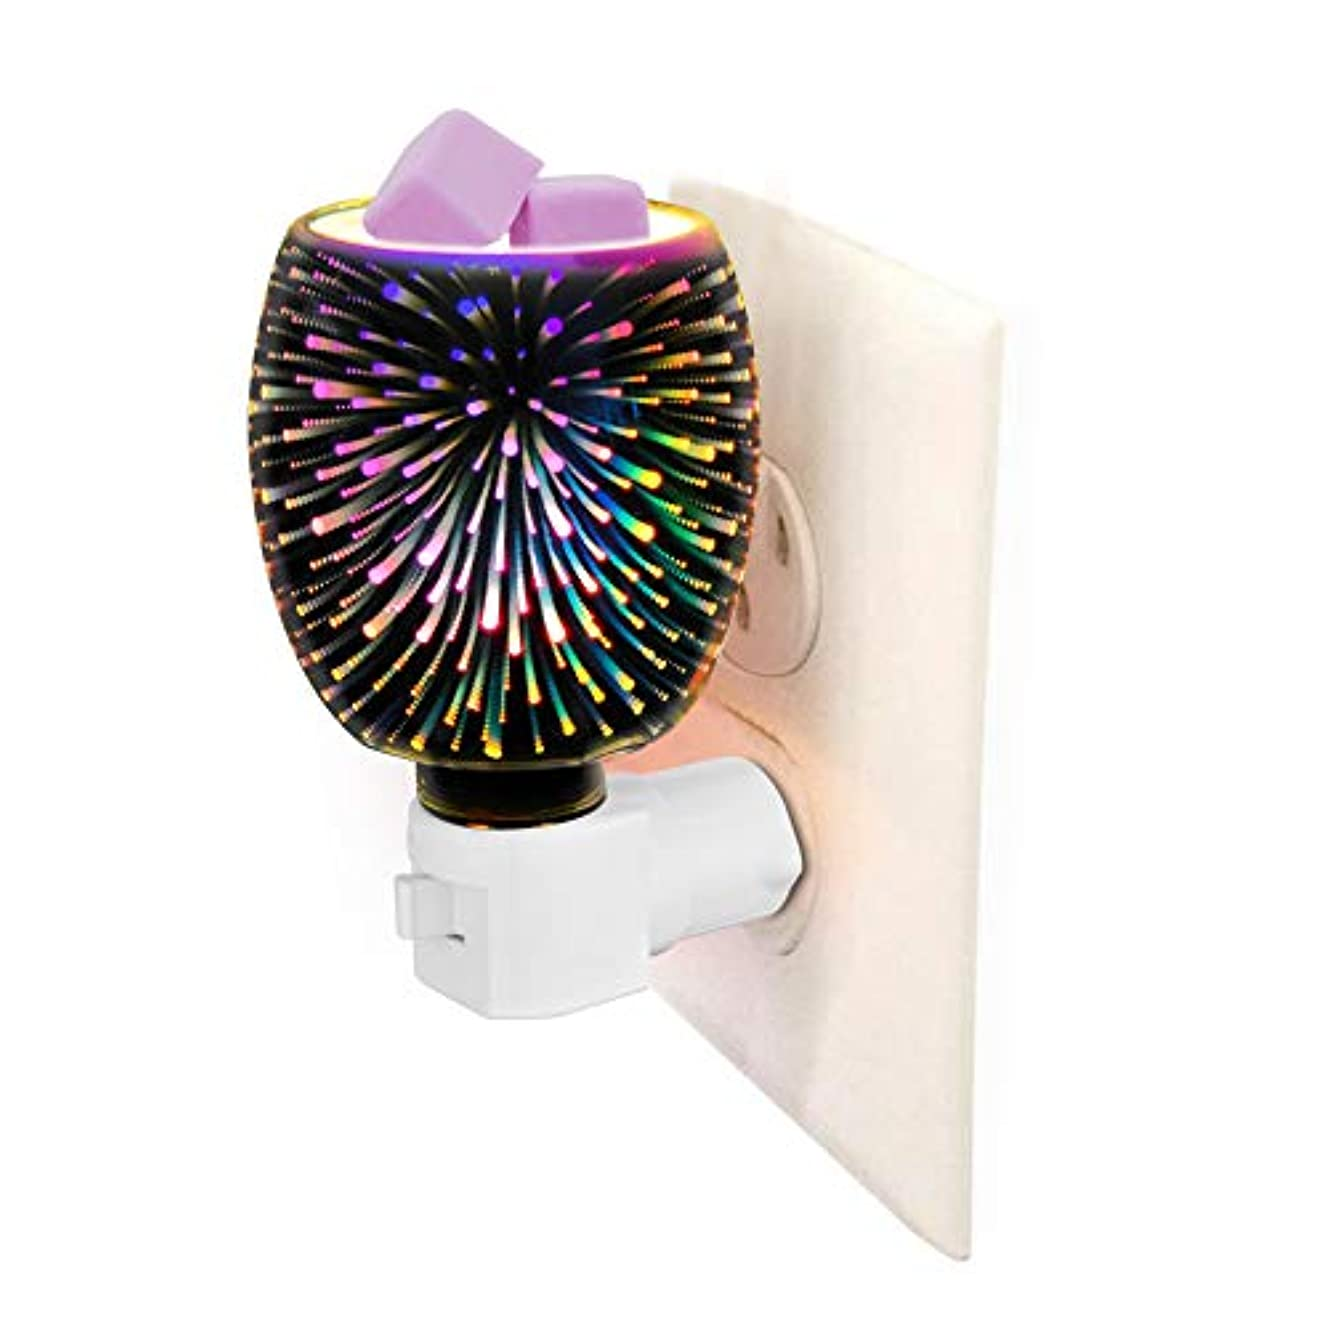 3D Glass Pluggable Fragrance Warmer- Decorative Plug-in for Warming Scented Candle Wax Melts and Tarts or Essential...